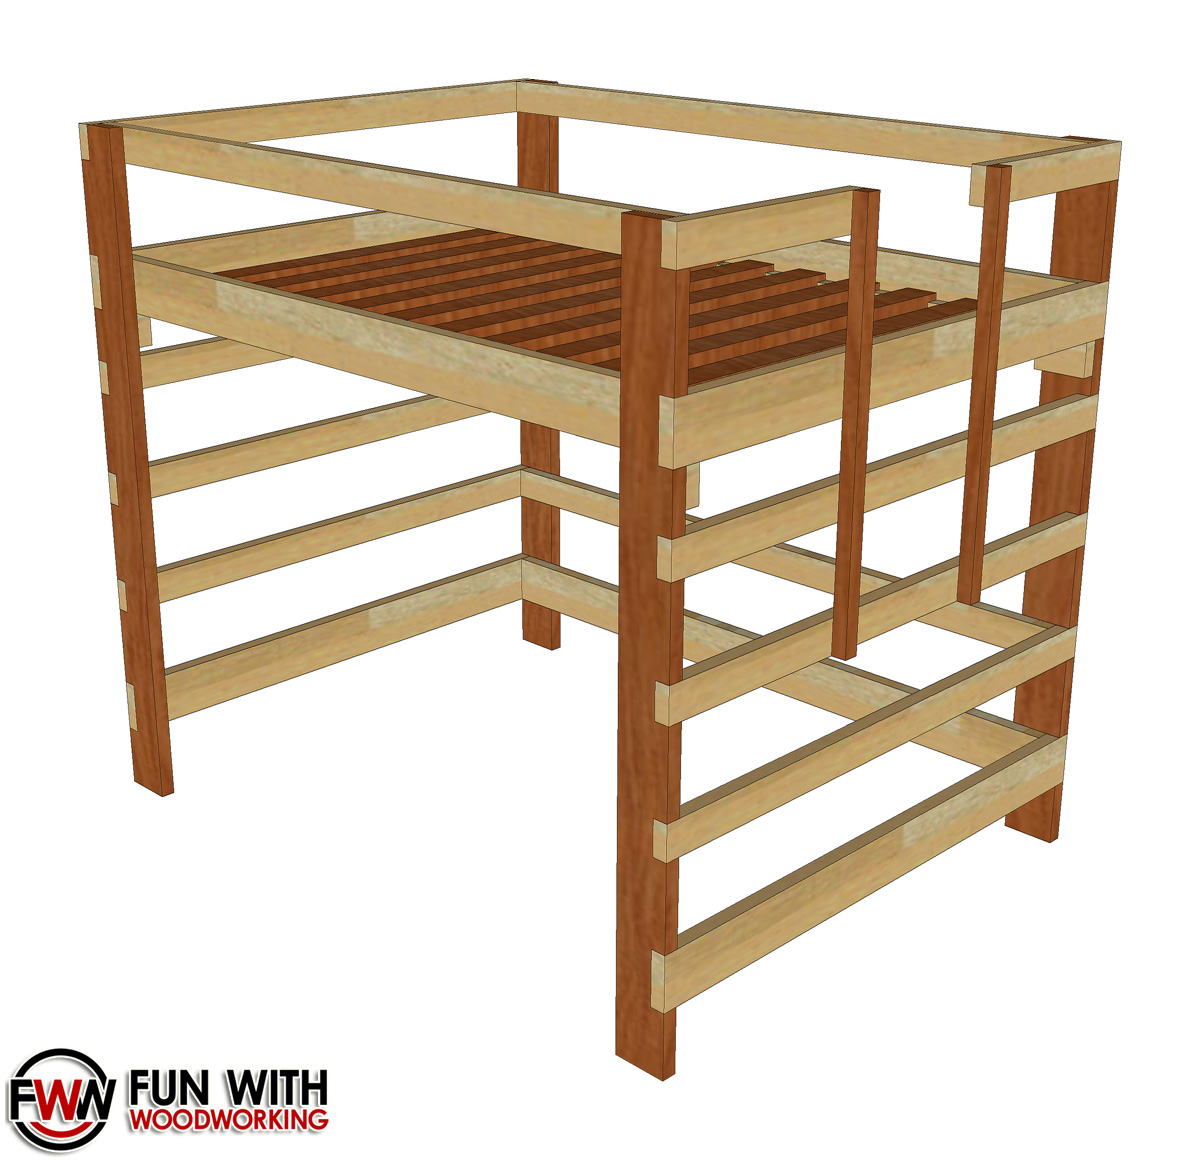 full size loft bed full plans fun with woodworking. Black Bedroom Furniture Sets. Home Design Ideas